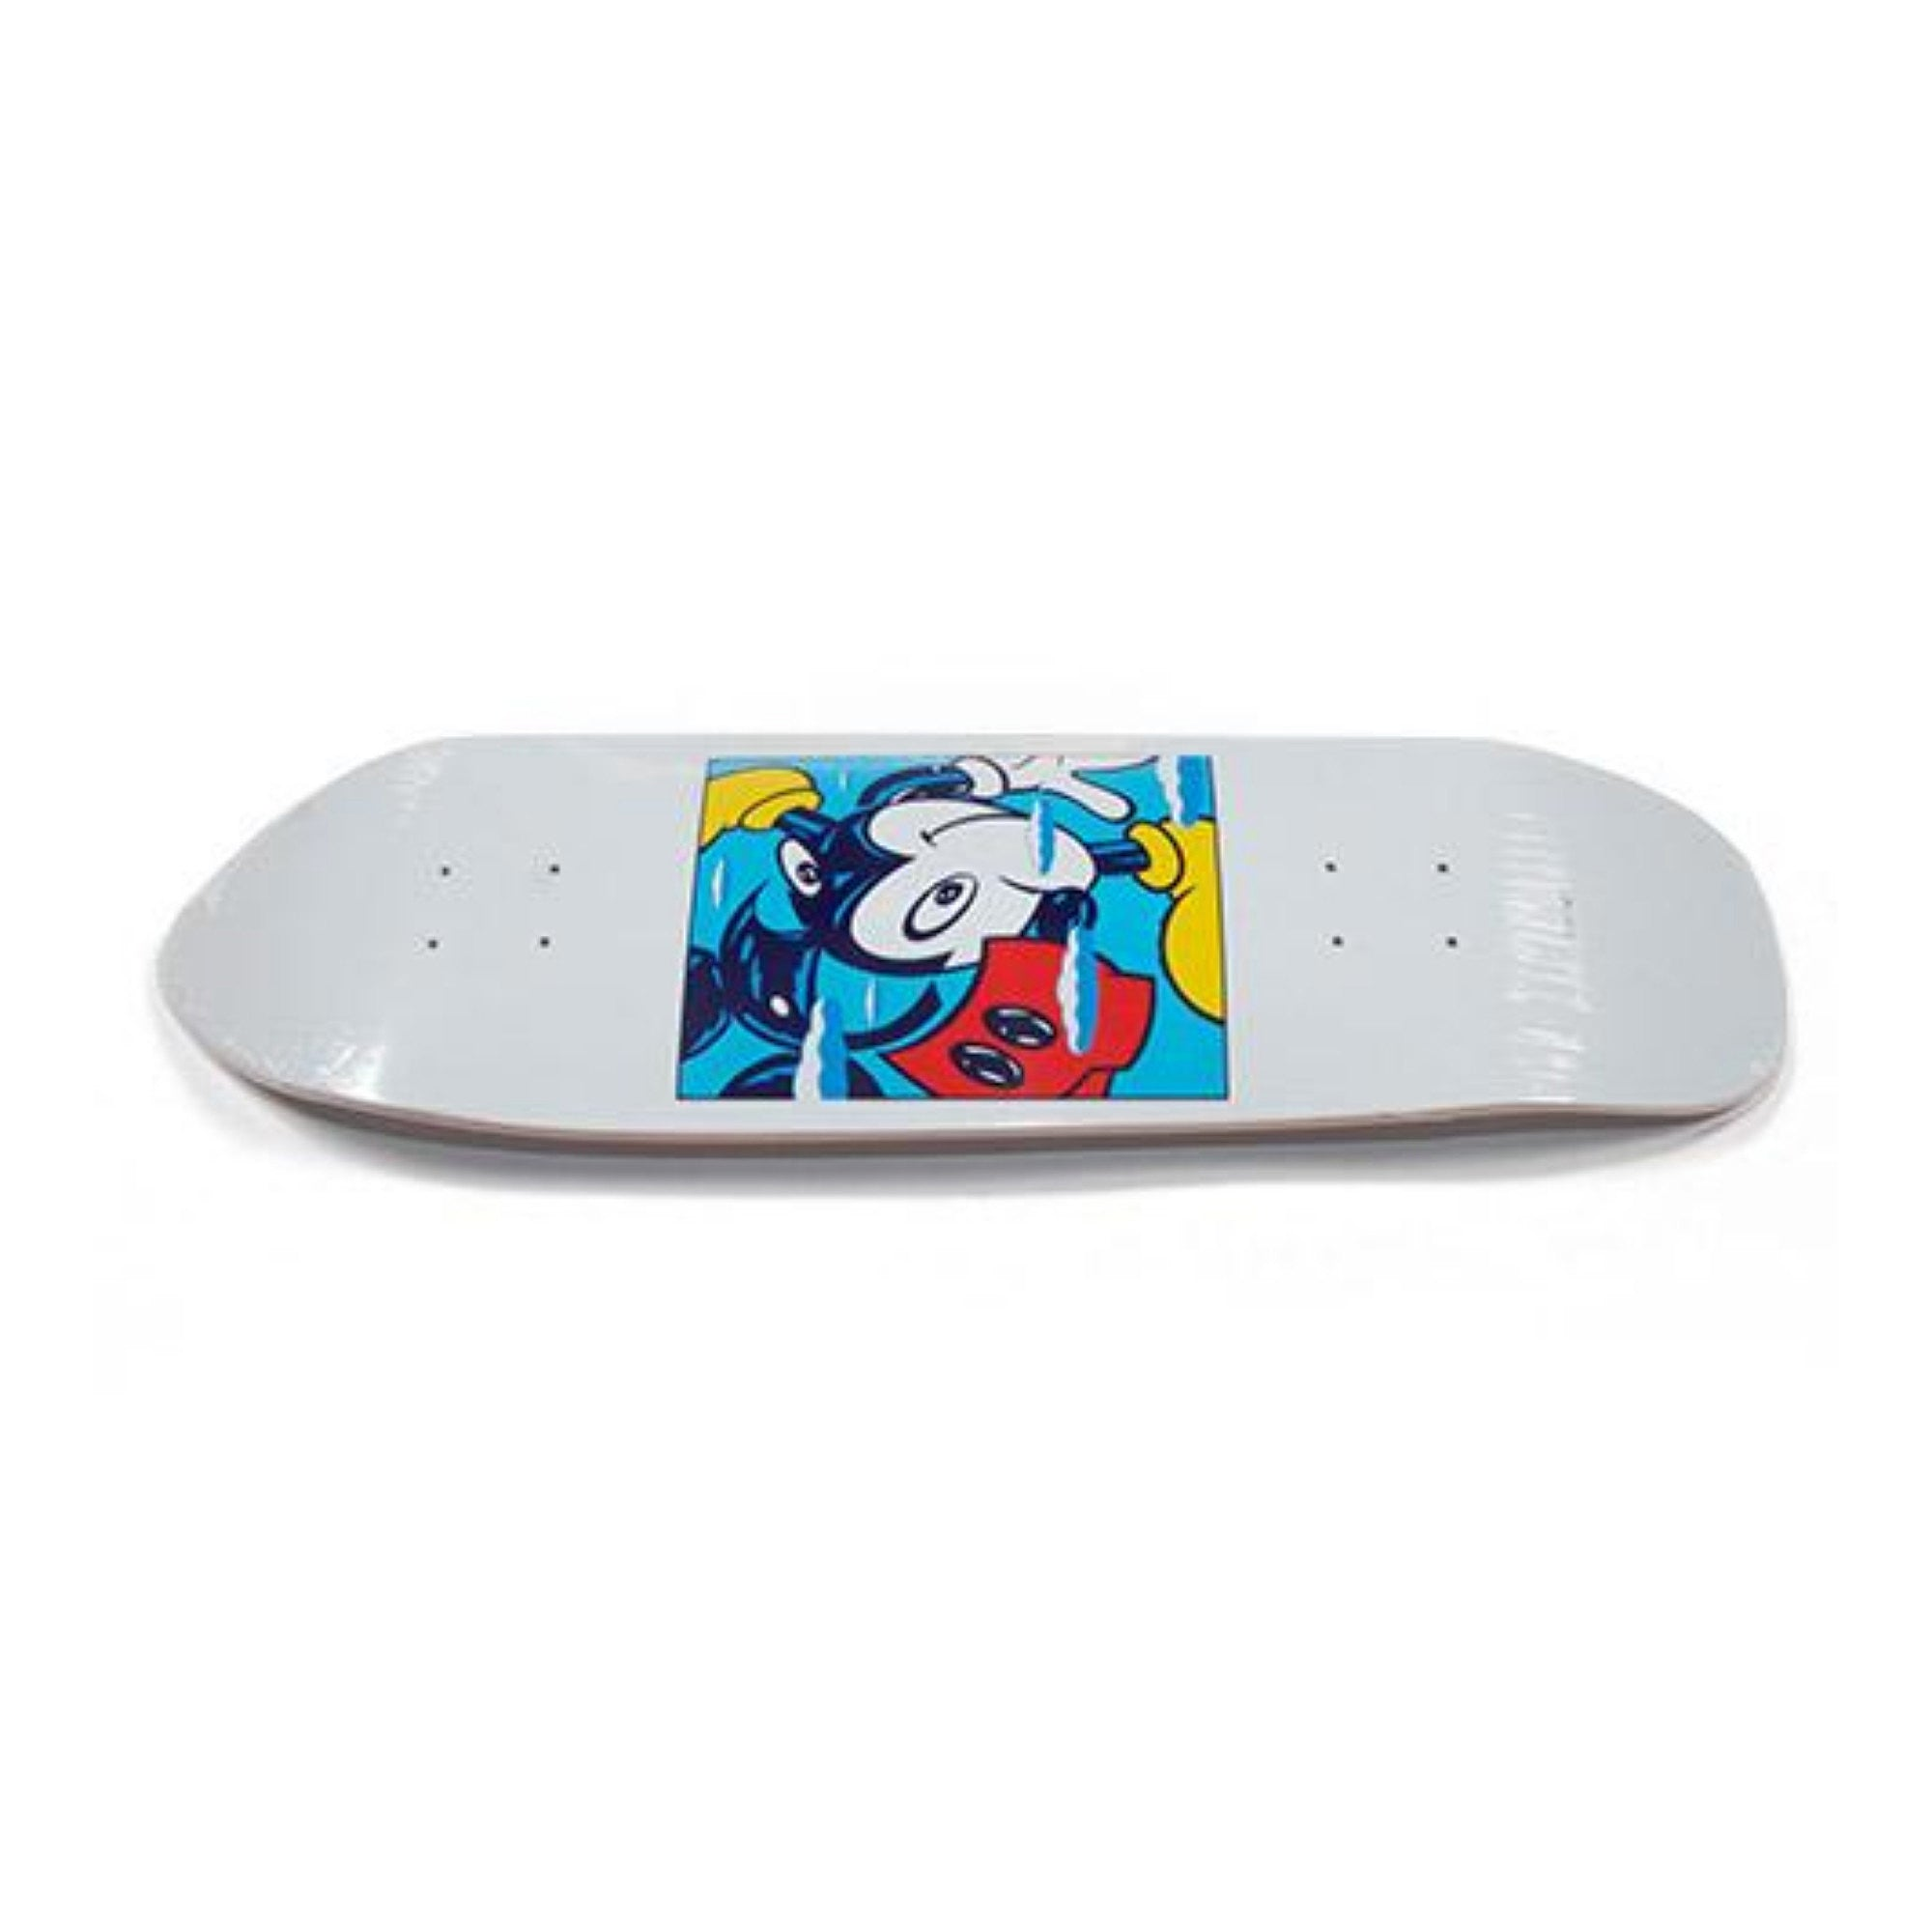 Vans Mickey 90th JVH Skate Deck - White